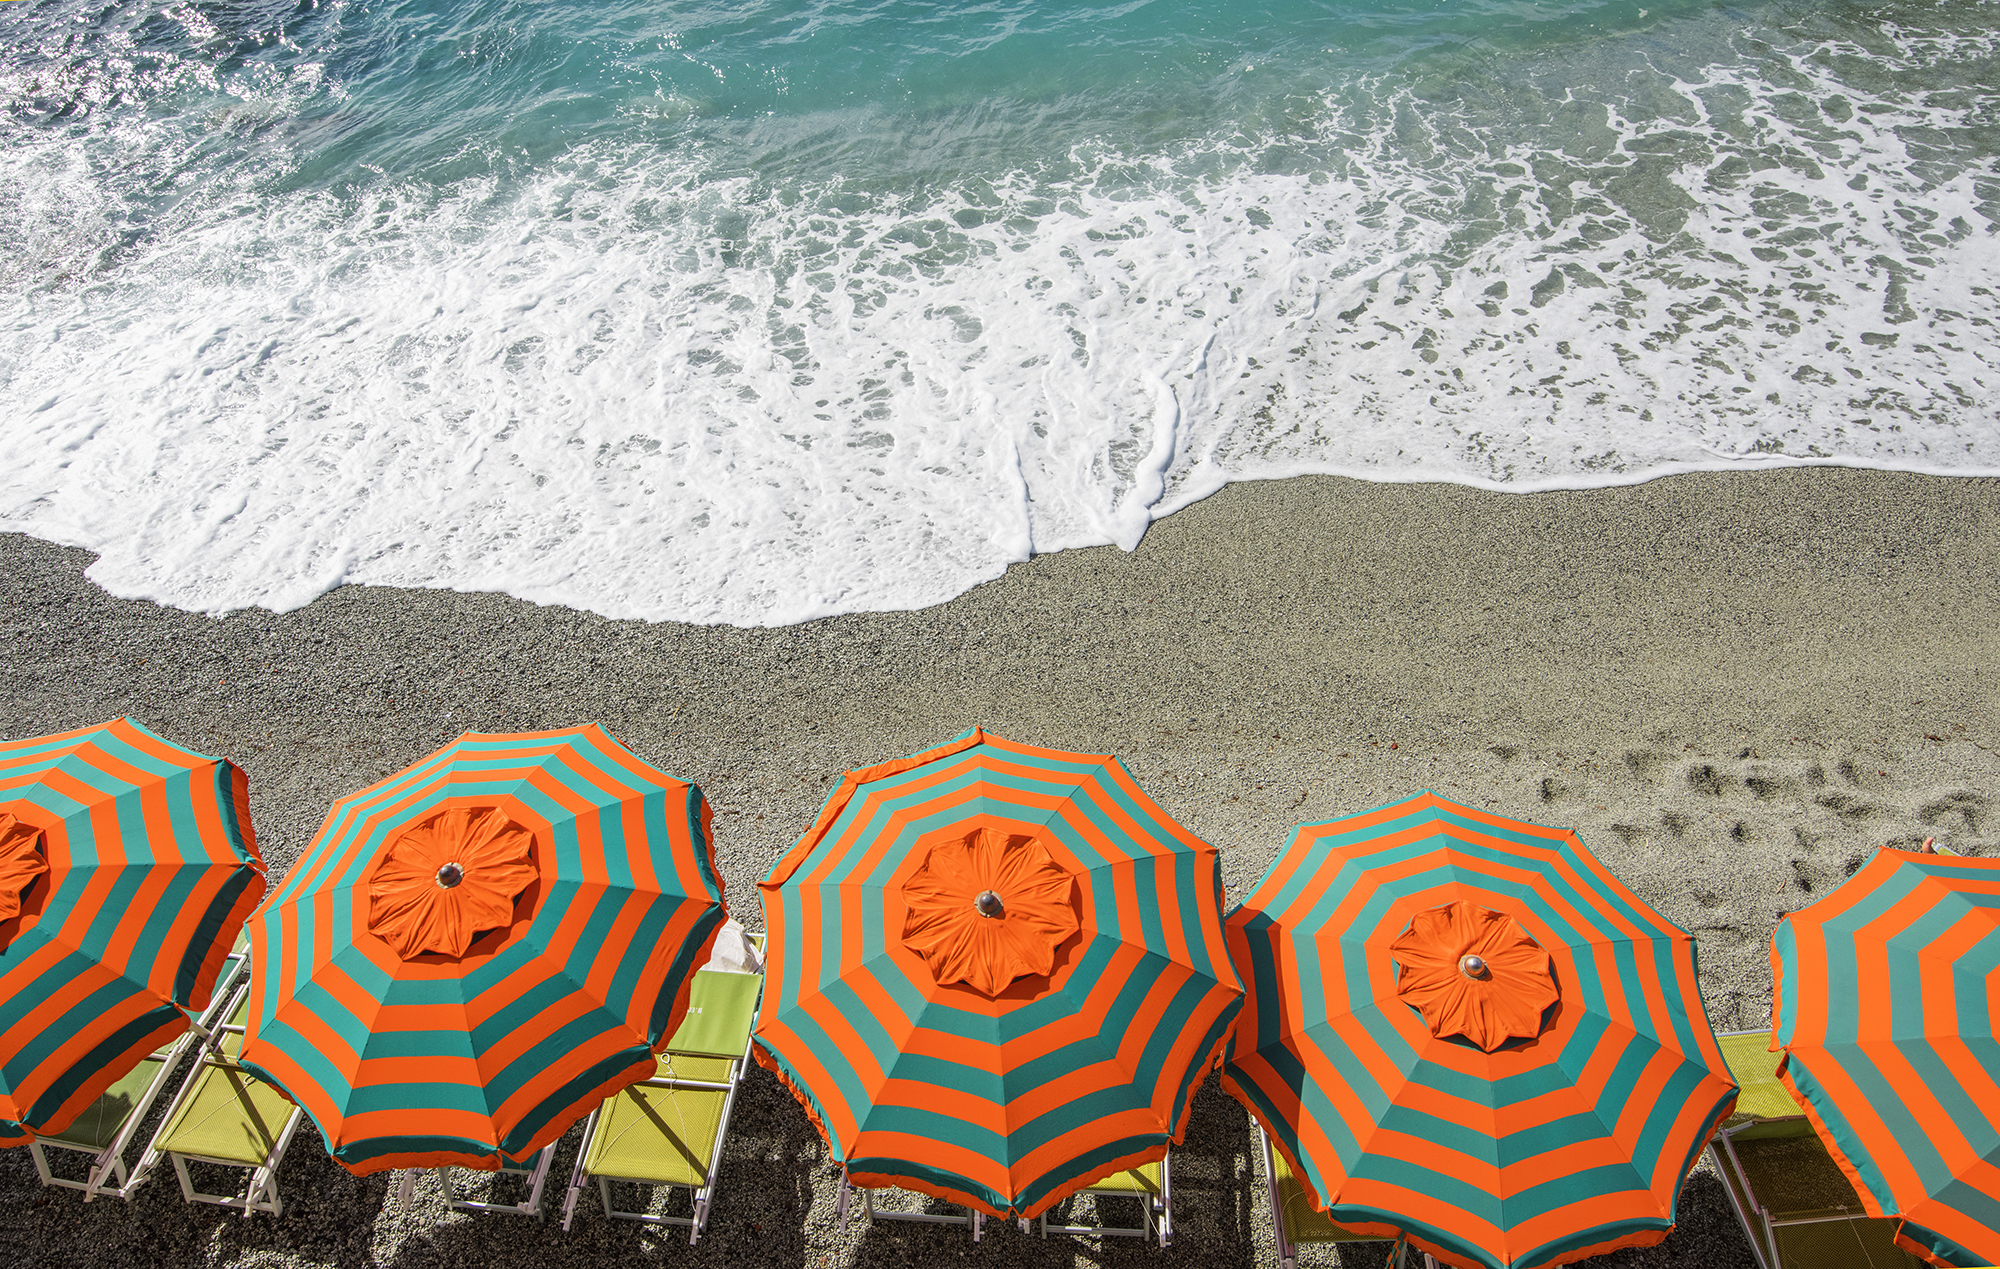 Moterosso Umbrellas